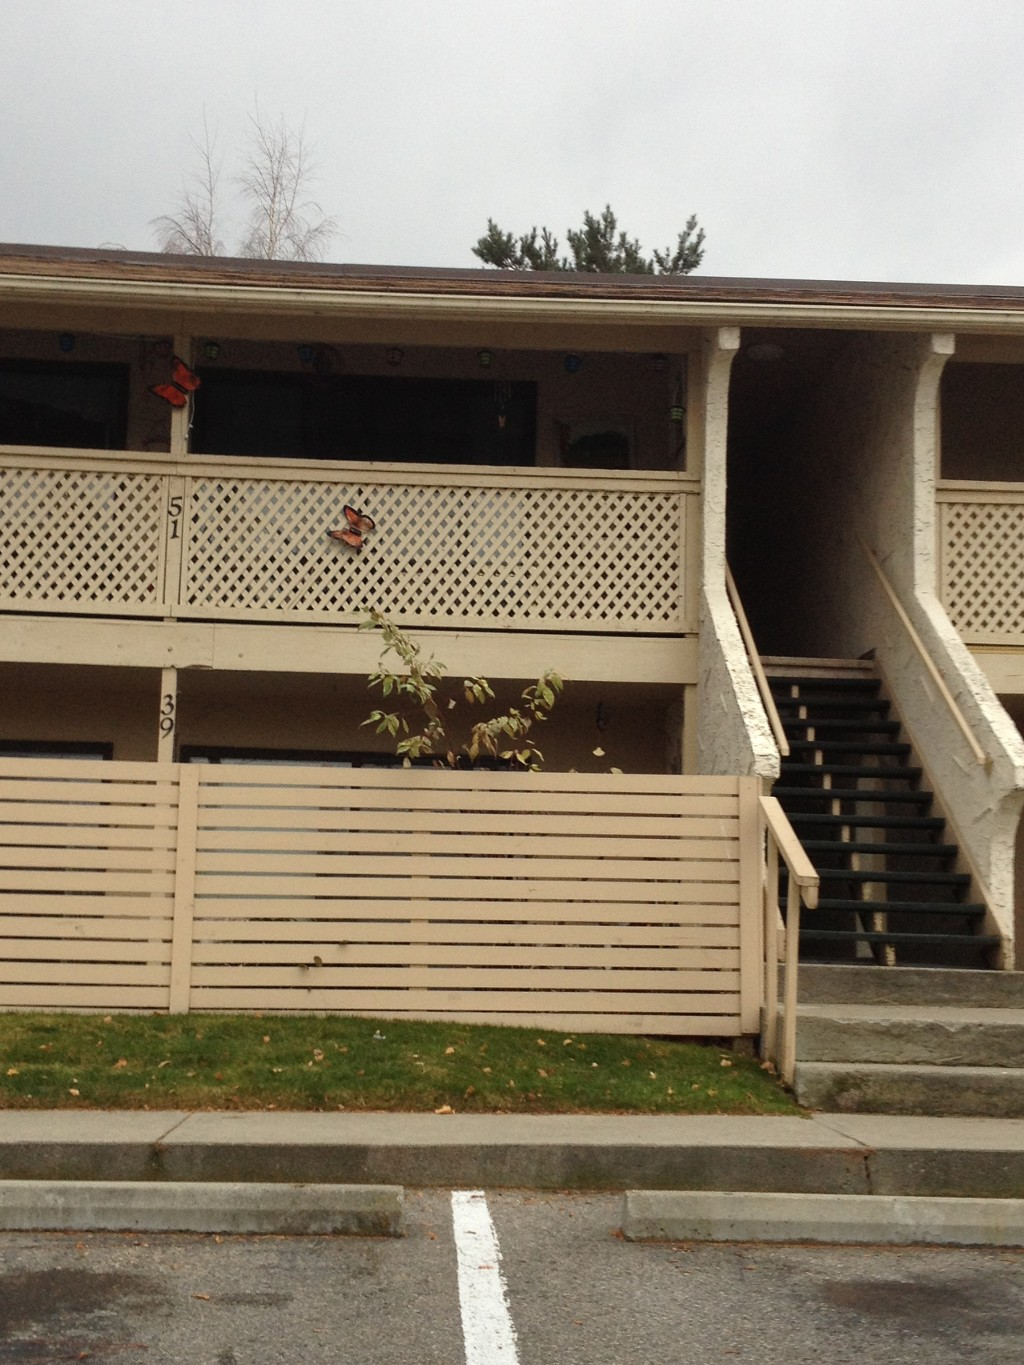 Main Photo: 53 - 310 Yorkton Avenue in Penticton: Residential Attached for sale : MLS® # 140636